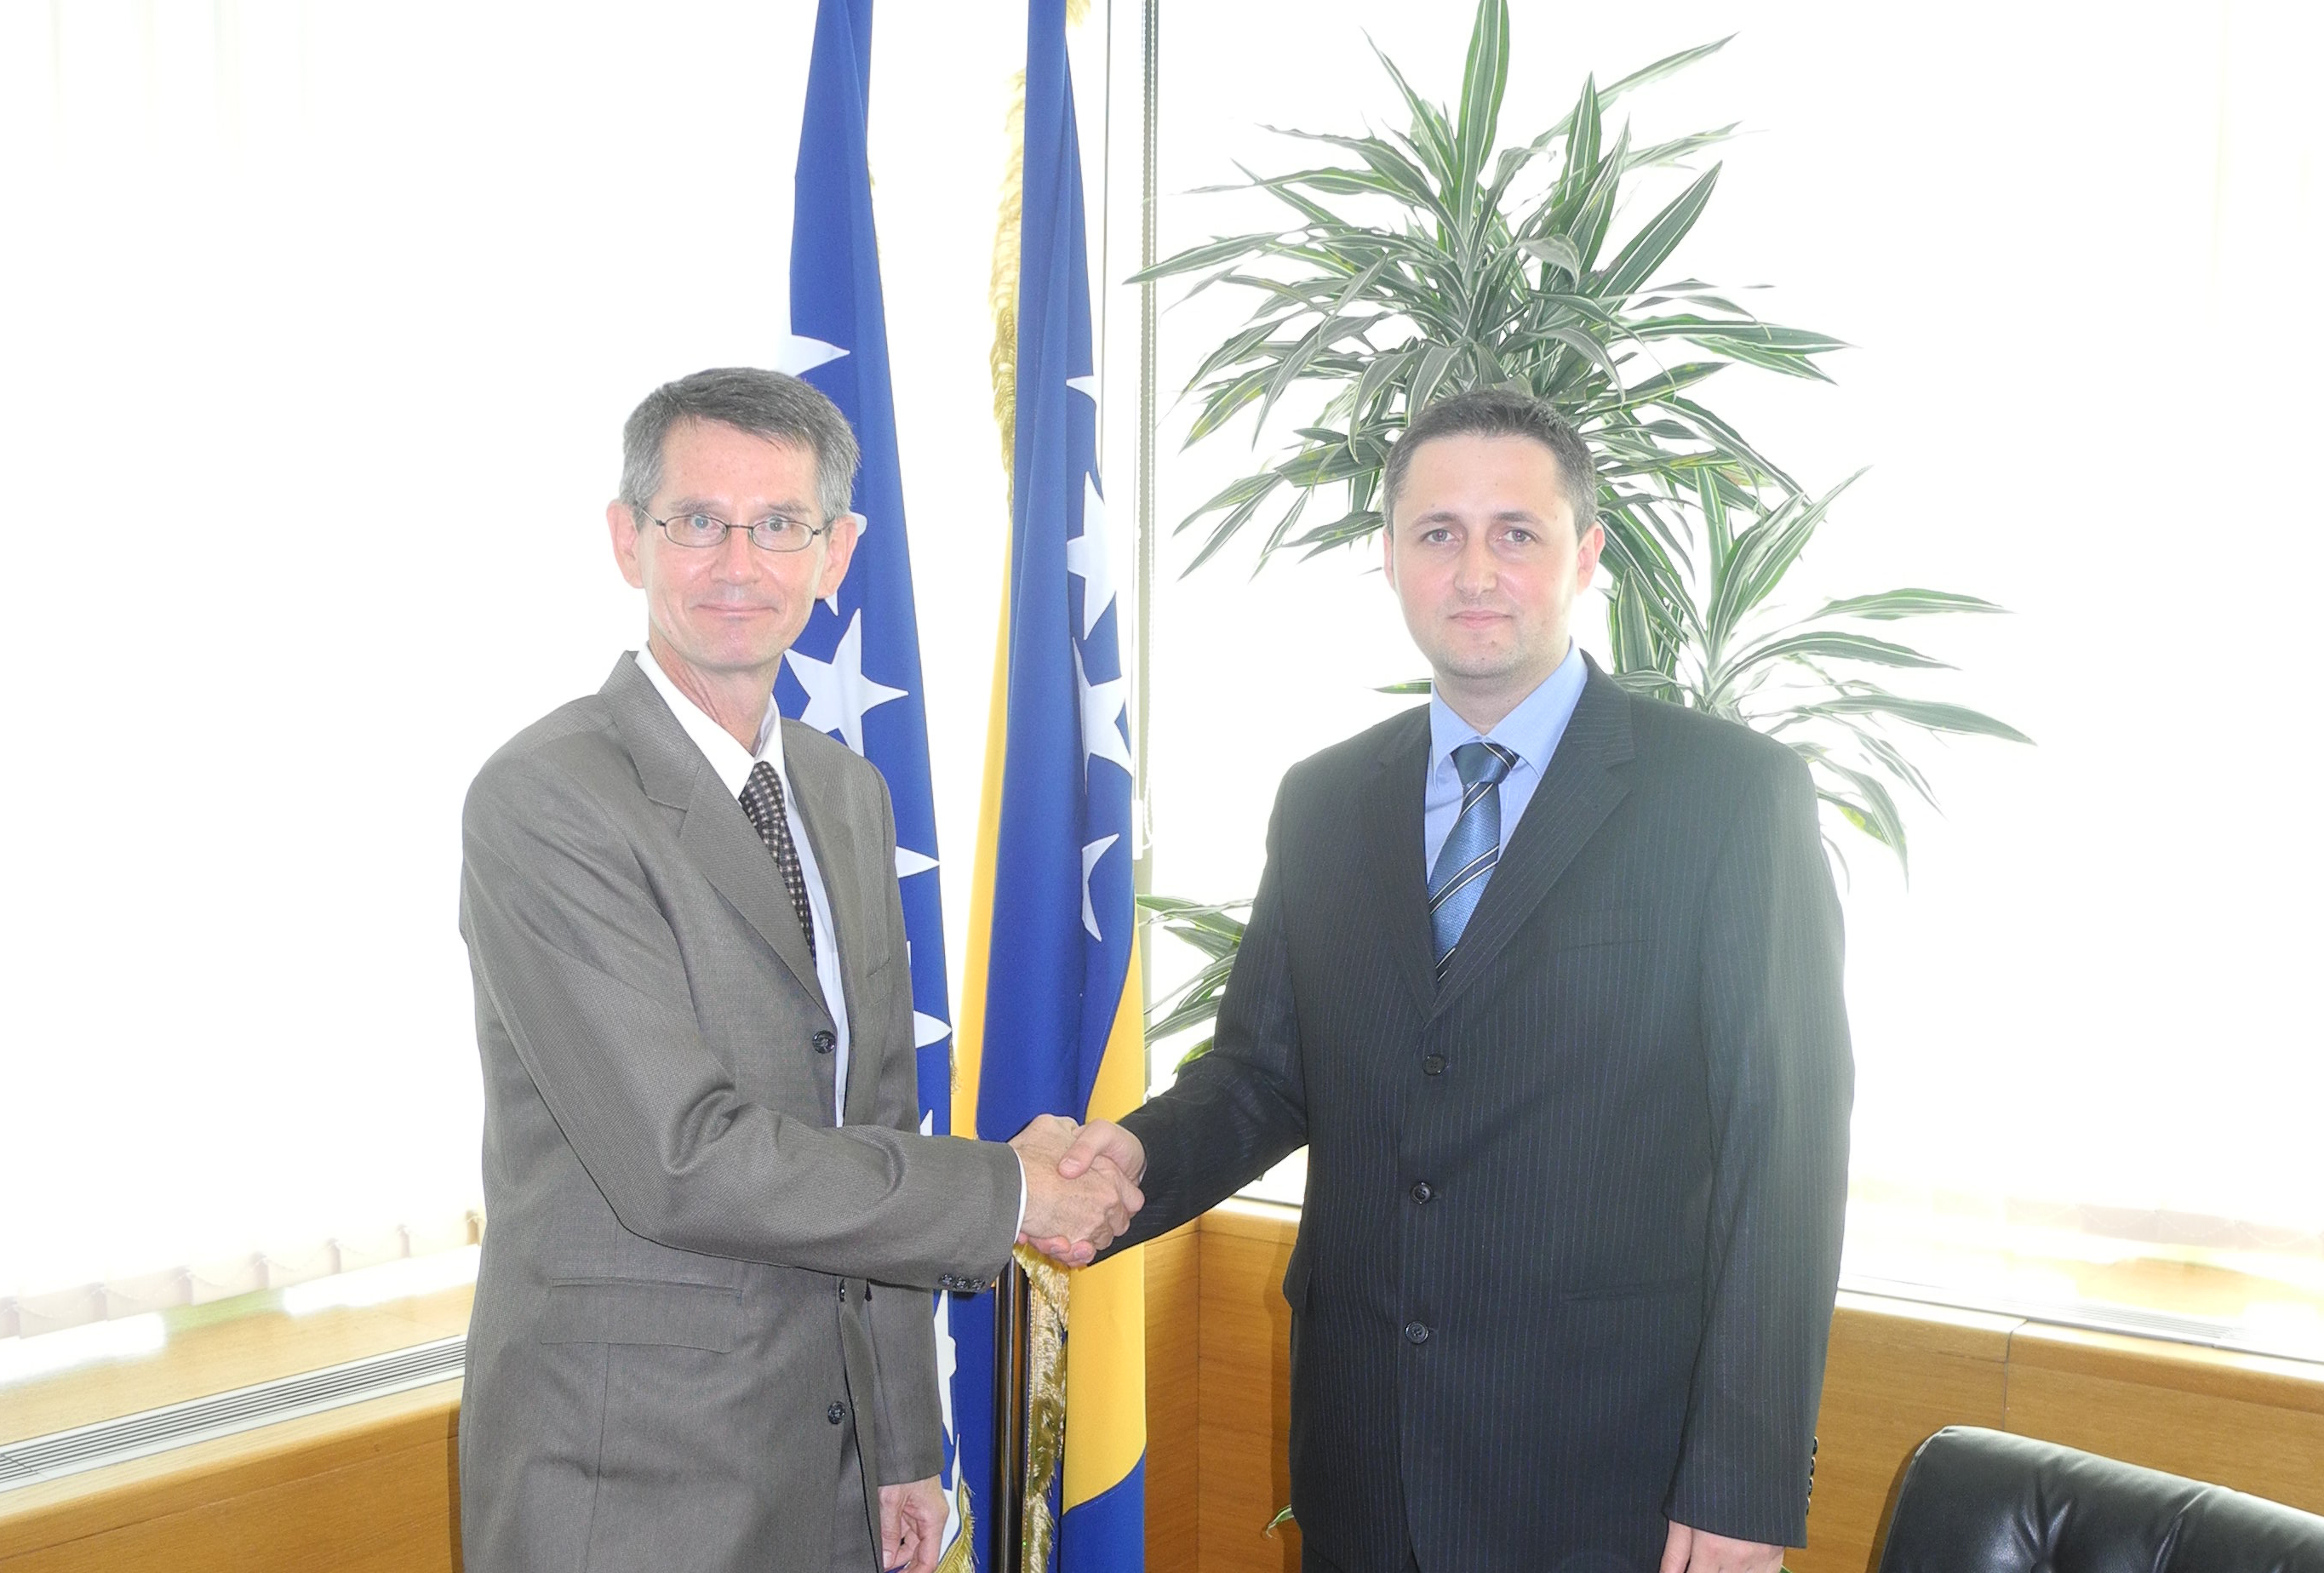 Head of the OSCE Mission to BiH congratulated the House of Representatives on activism and enthusiasm